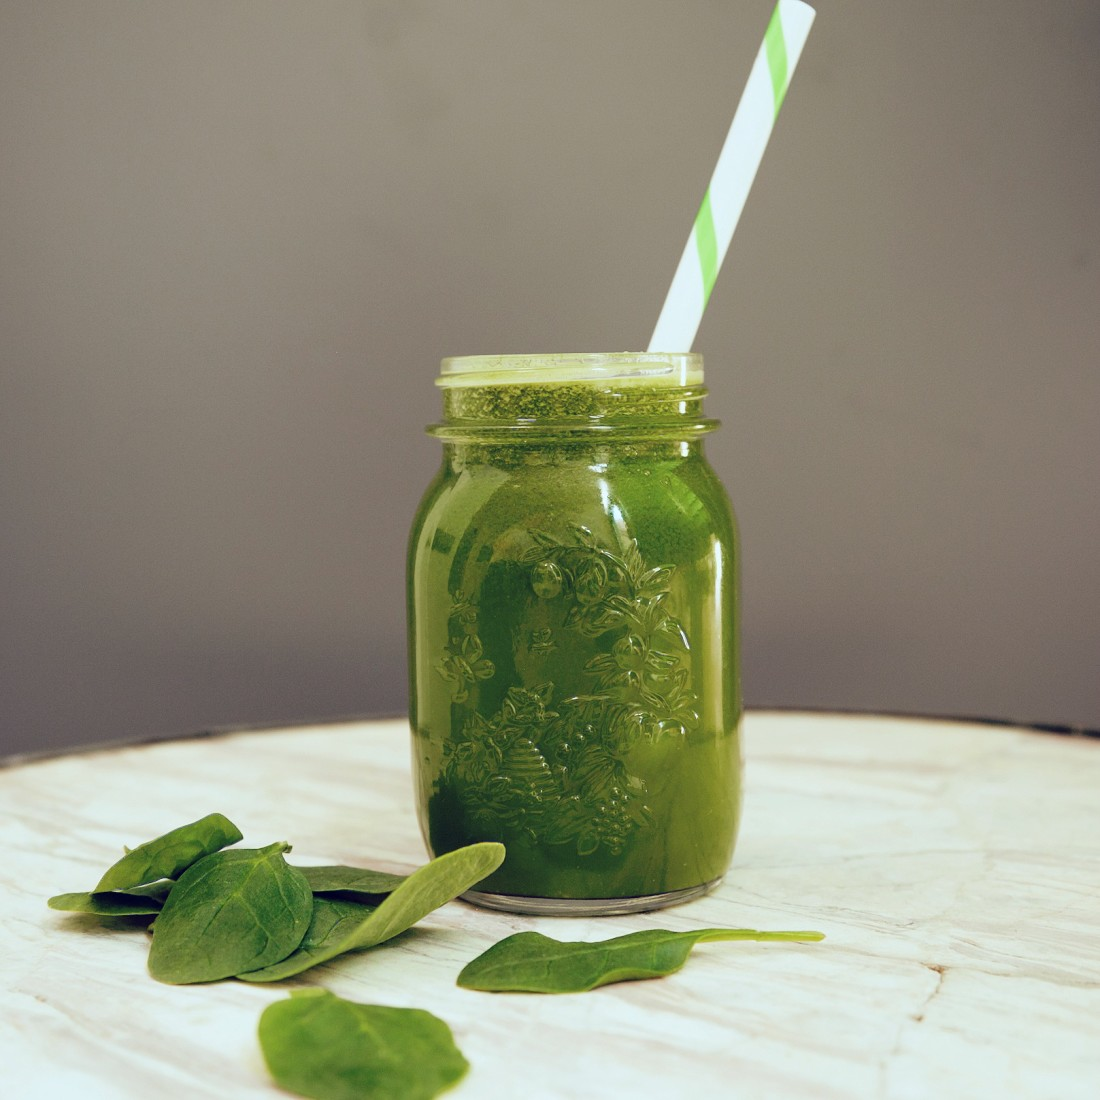 Green Juice Recipe. Receta de zumo verde